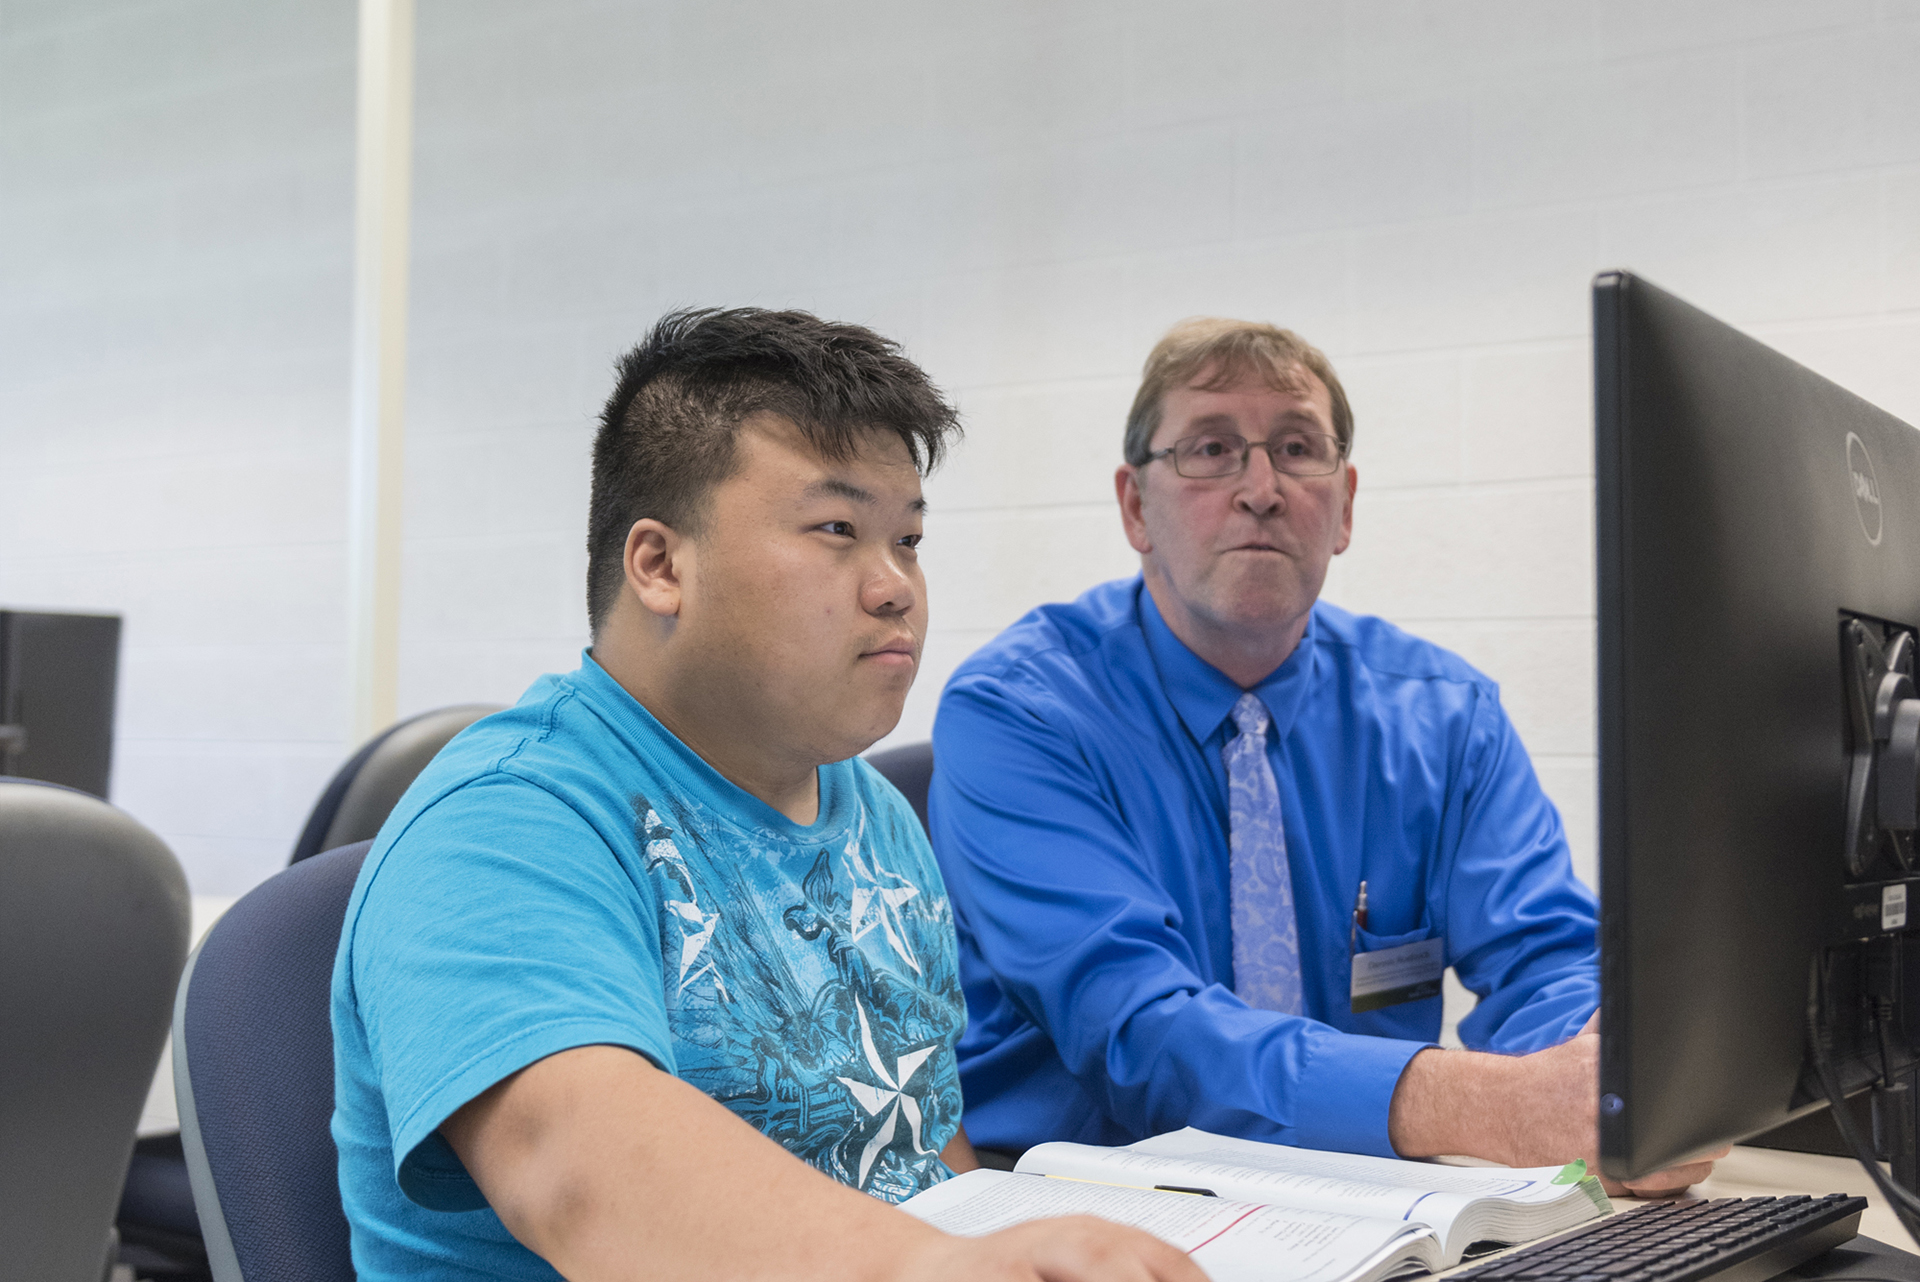 Student in computer lab with instructor